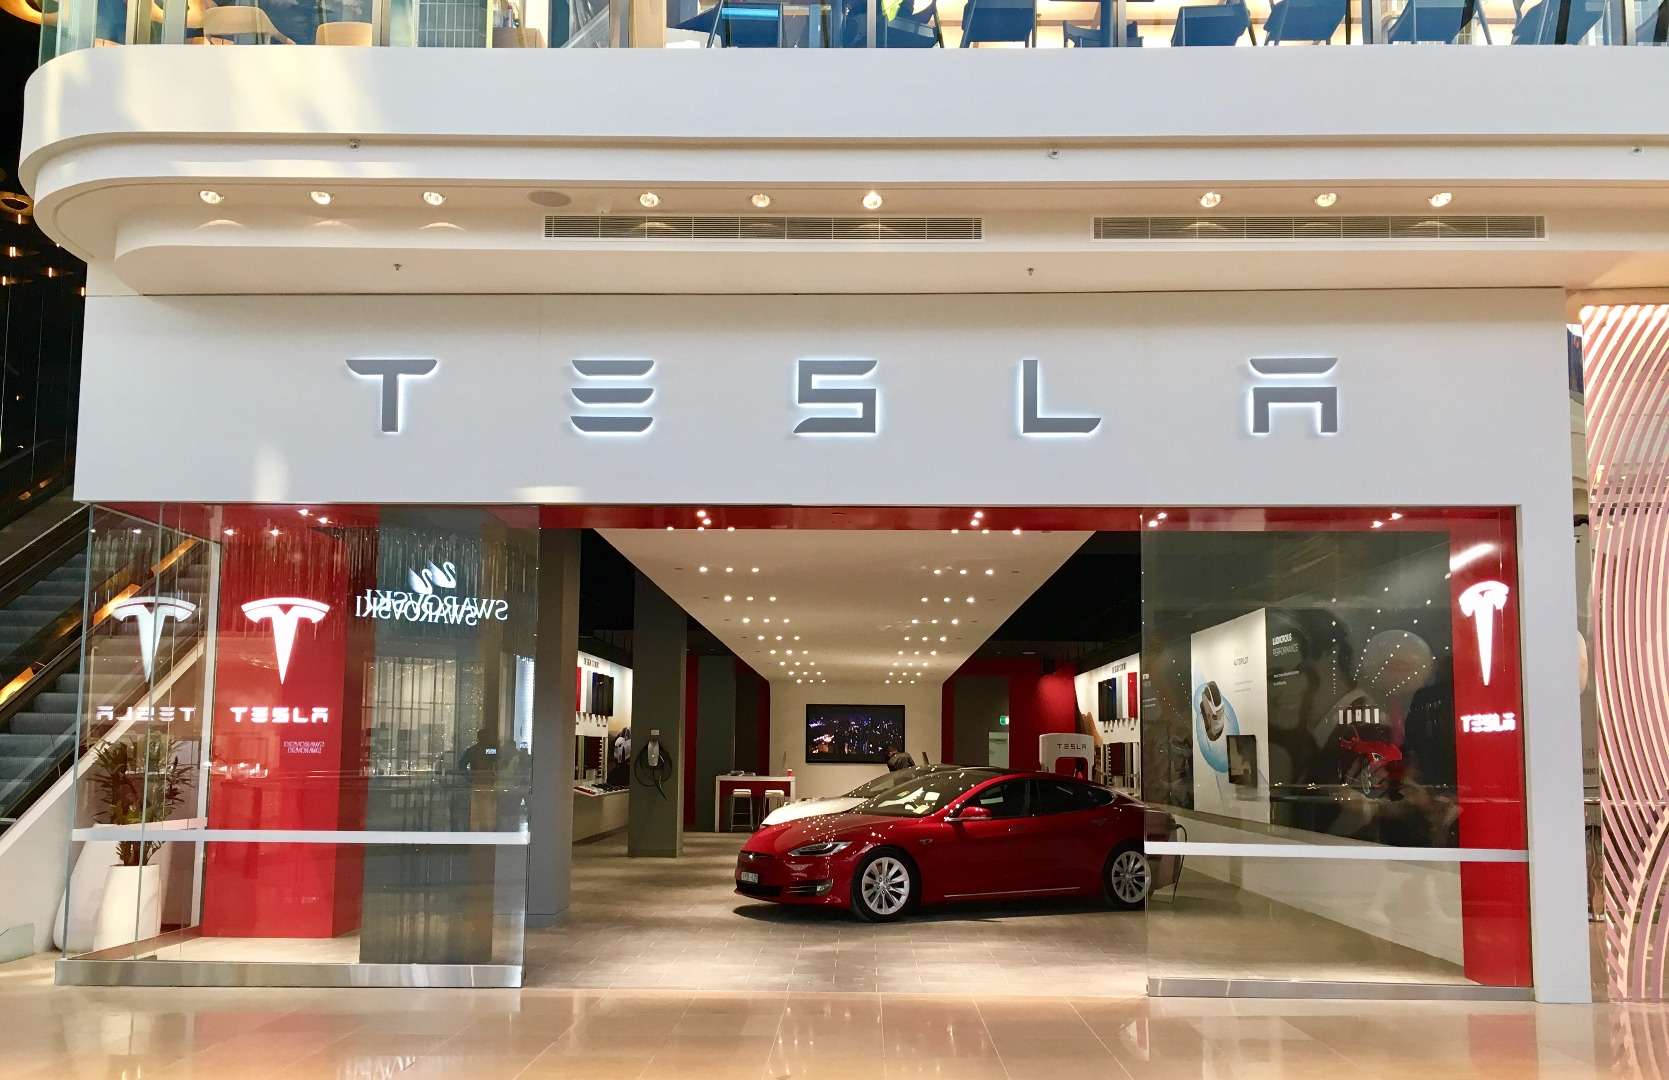 News - Tesla Opens New Melbourne Store In Chadstone